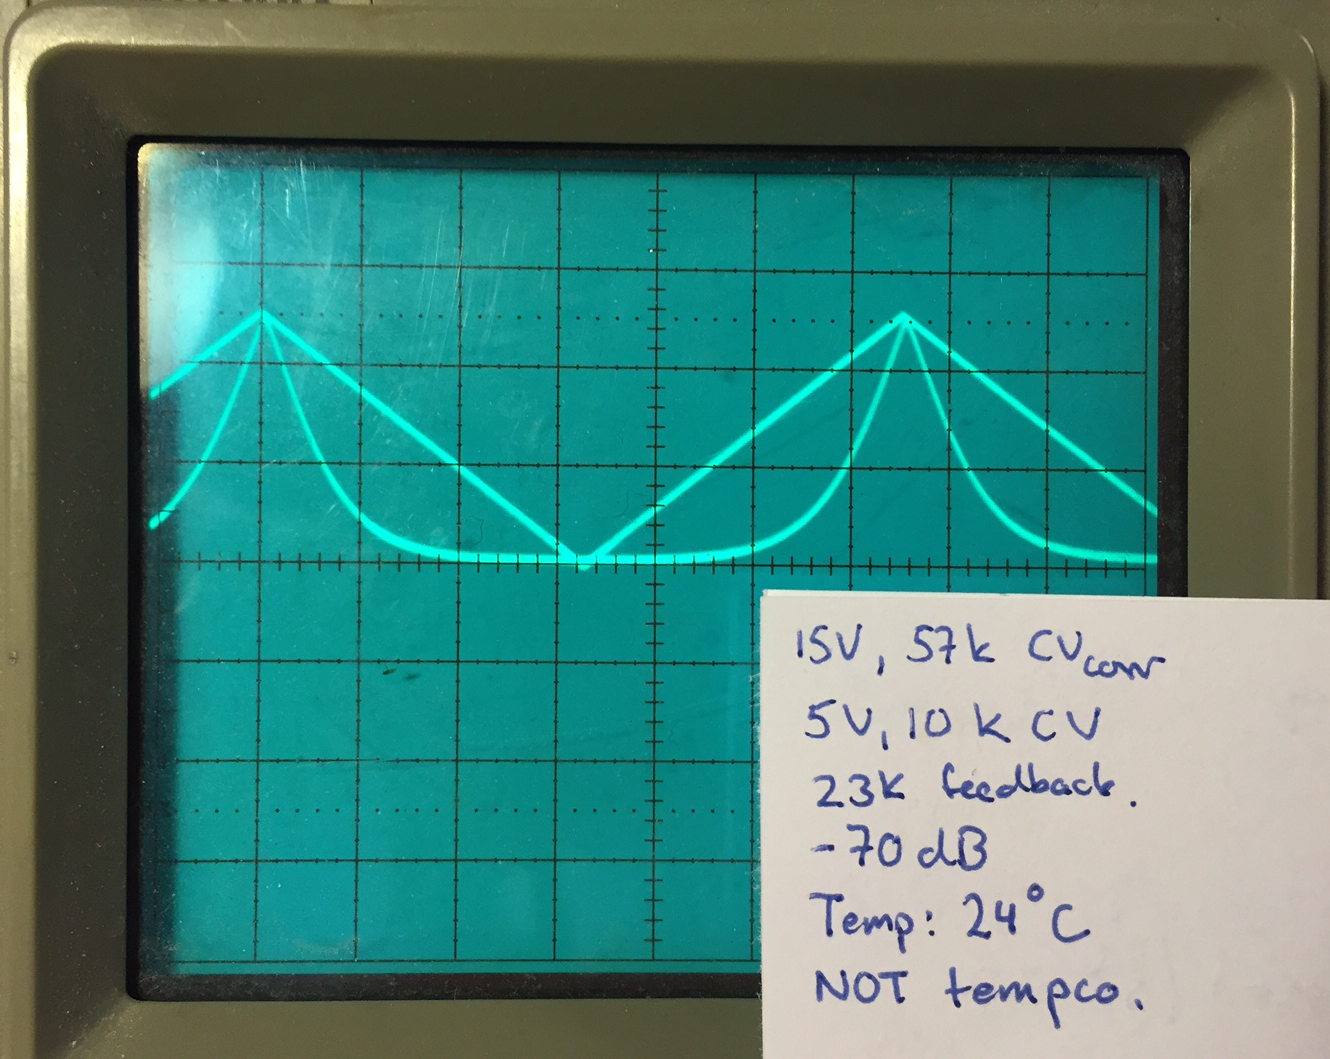 difference cv resume%0A CV  linear  and response  Exponential  without trimming  No tempco used but  temperature is    degrees celcius  Trim voltage is   V  not   V as it says  in